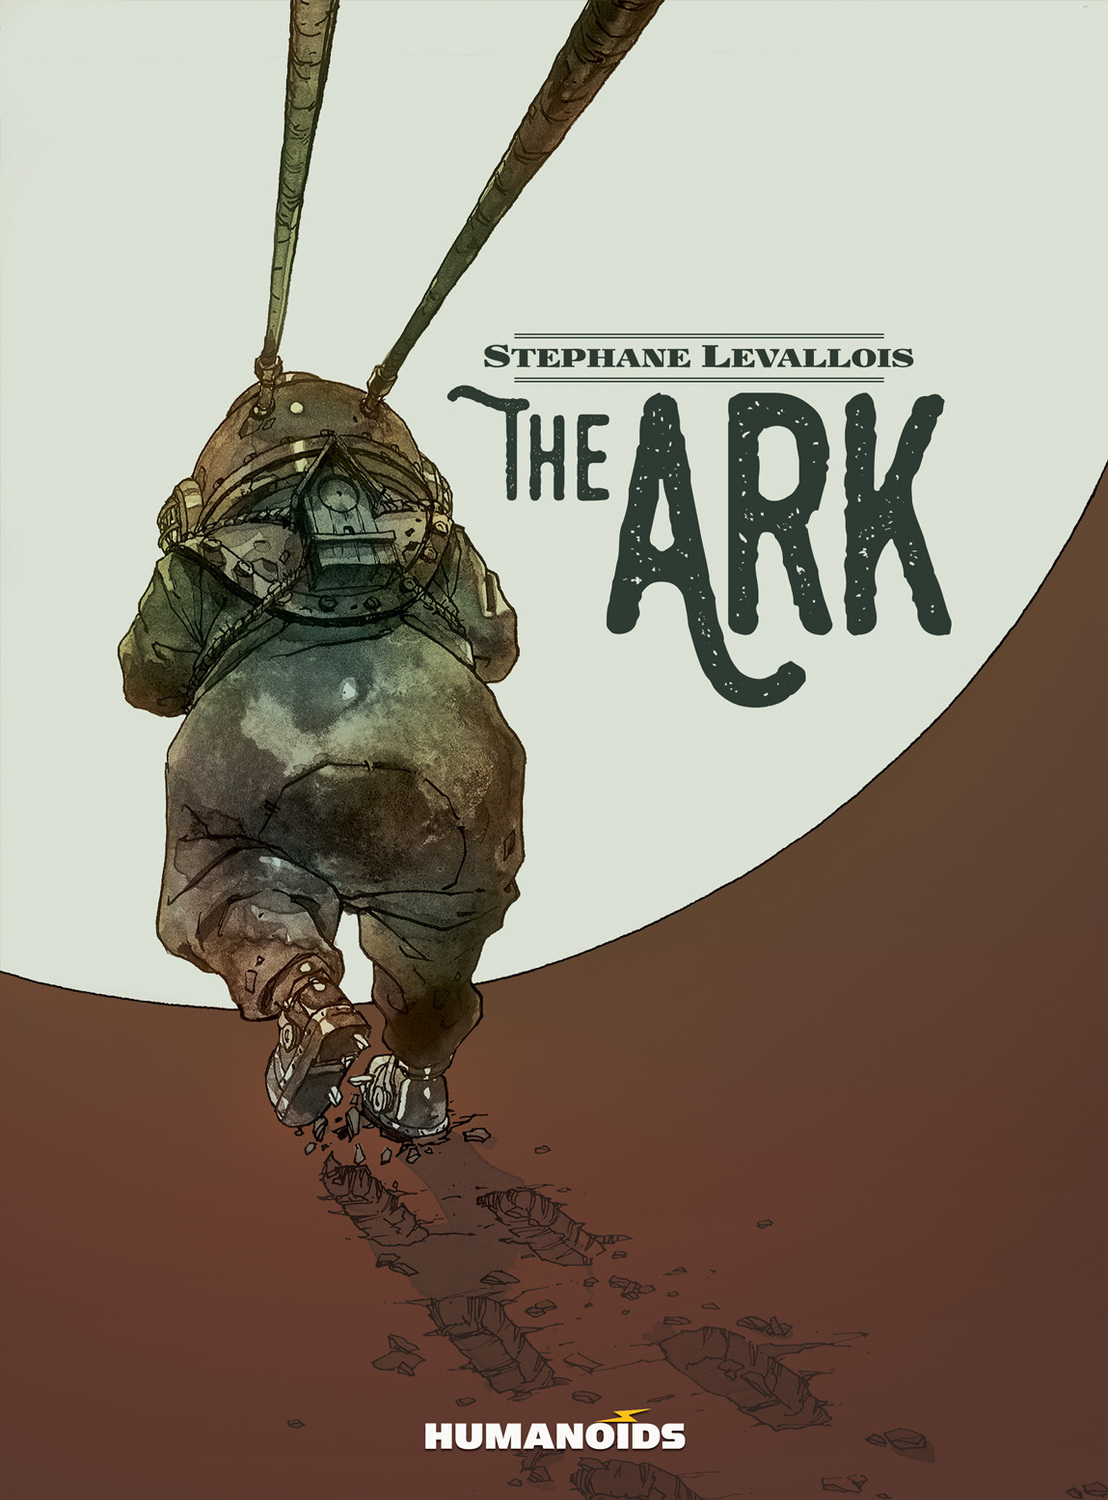 The Ark - Hardcover Trade